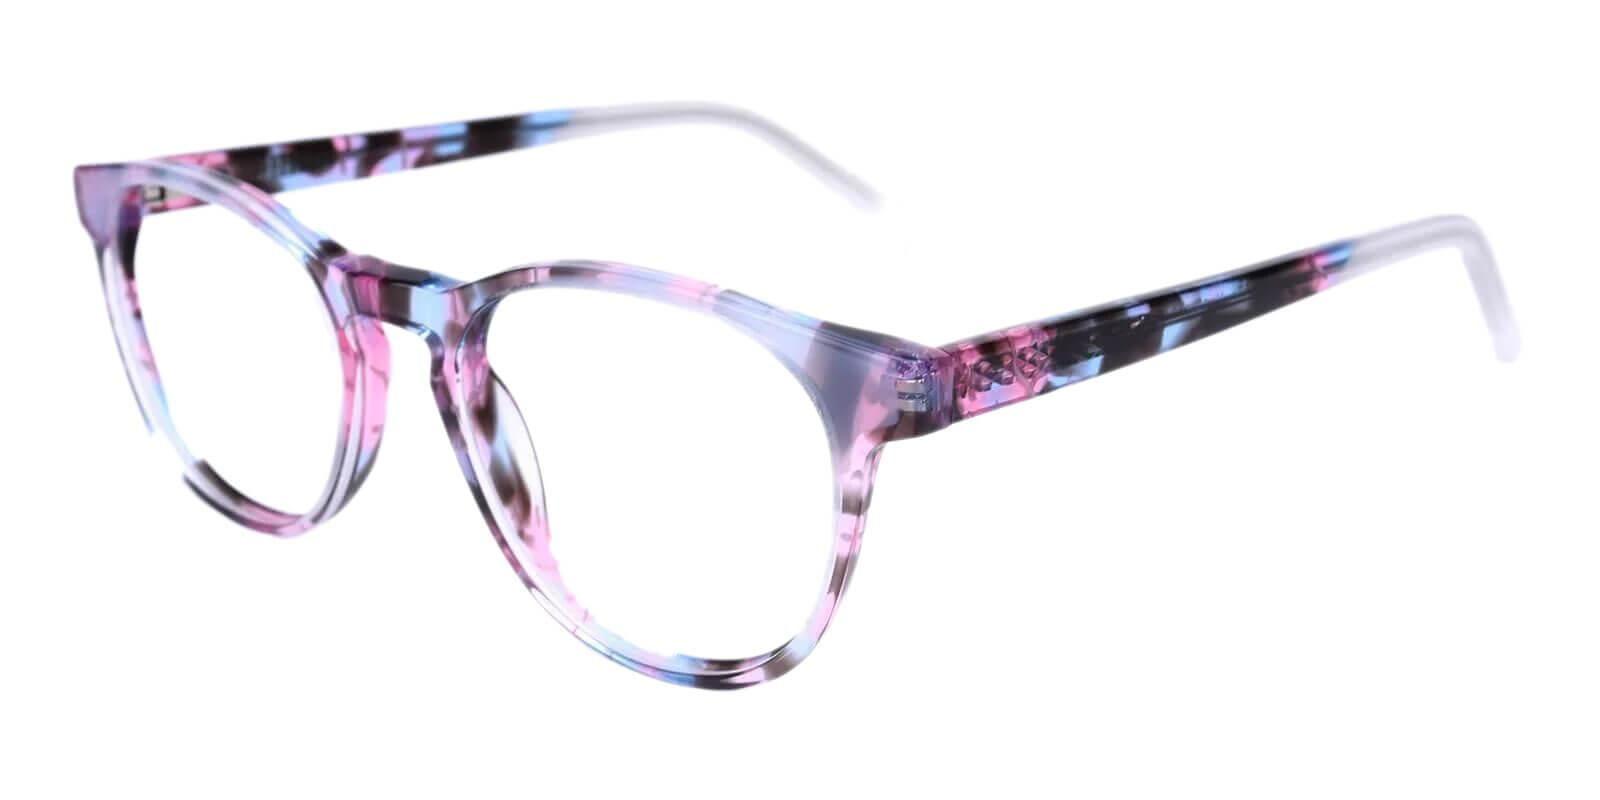 Otava Purple Acetate Eyeglasses , UniversalBridgeFit Frames from ABBE Glasses